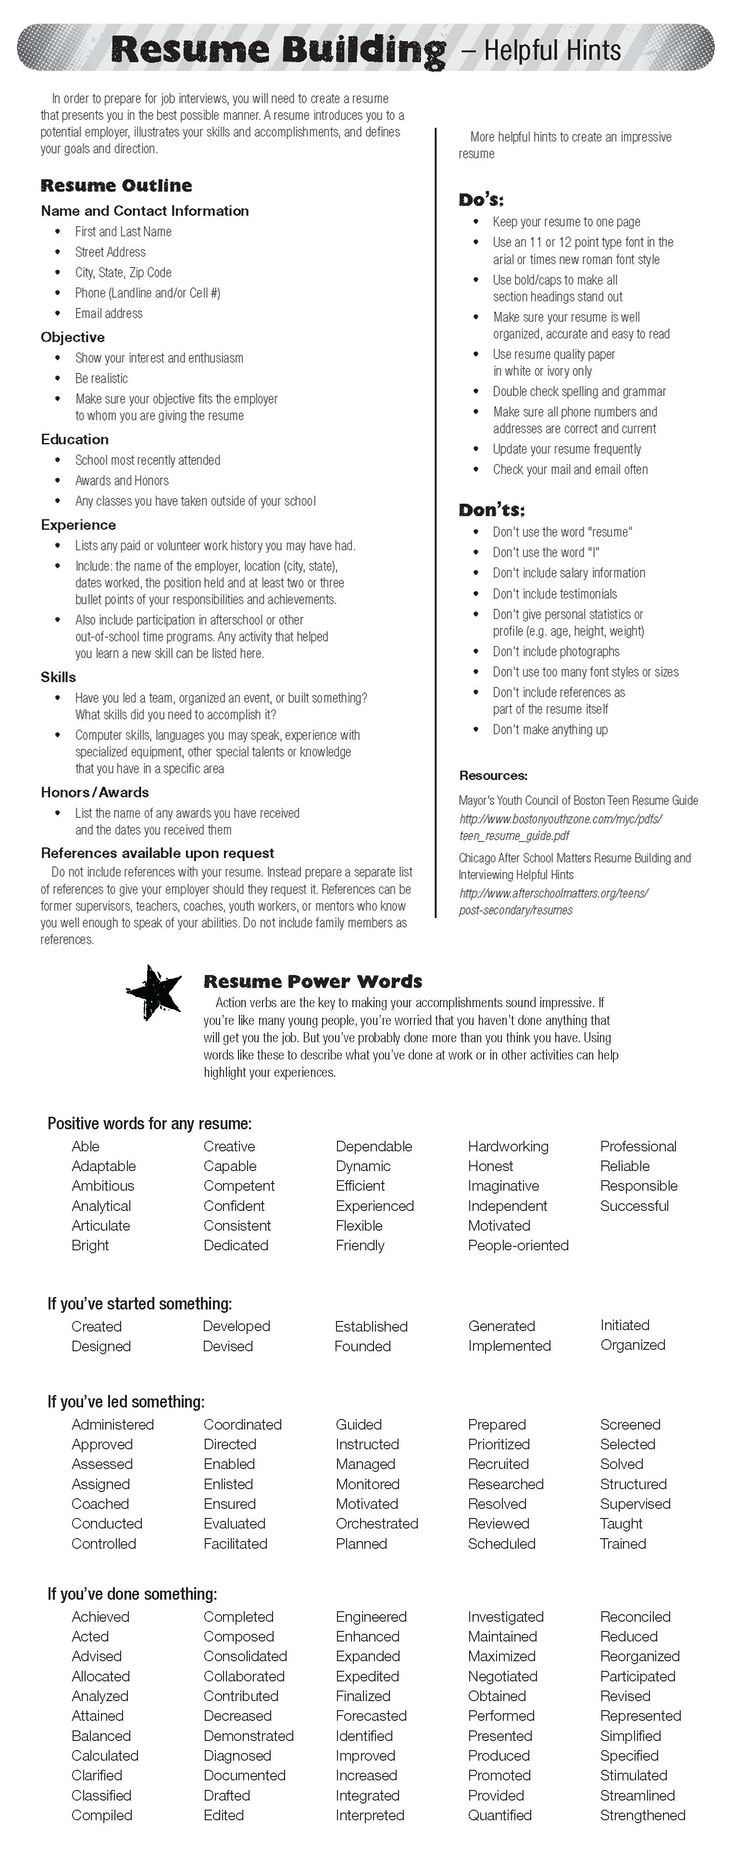 Opposenewapstandardsus  Mesmerizing  Ideas About Resume On Pinterest  Cv Format Resume Cv And  With Great  Ideas About Resume On Pinterest  Cv Format Resume Cv And Resume Templates With Astounding Simple Resume Objective Also Job Objectives On Resume In Addition Etl Resume And Mac Pages Resume Templates As Well As Teacher Resumes Samples Additionally Microsoft Office  Resume Templates From Pinterestcom With Opposenewapstandardsus  Great  Ideas About Resume On Pinterest  Cv Format Resume Cv And  With Astounding  Ideas About Resume On Pinterest  Cv Format Resume Cv And Resume Templates And Mesmerizing Simple Resume Objective Also Job Objectives On Resume In Addition Etl Resume From Pinterestcom